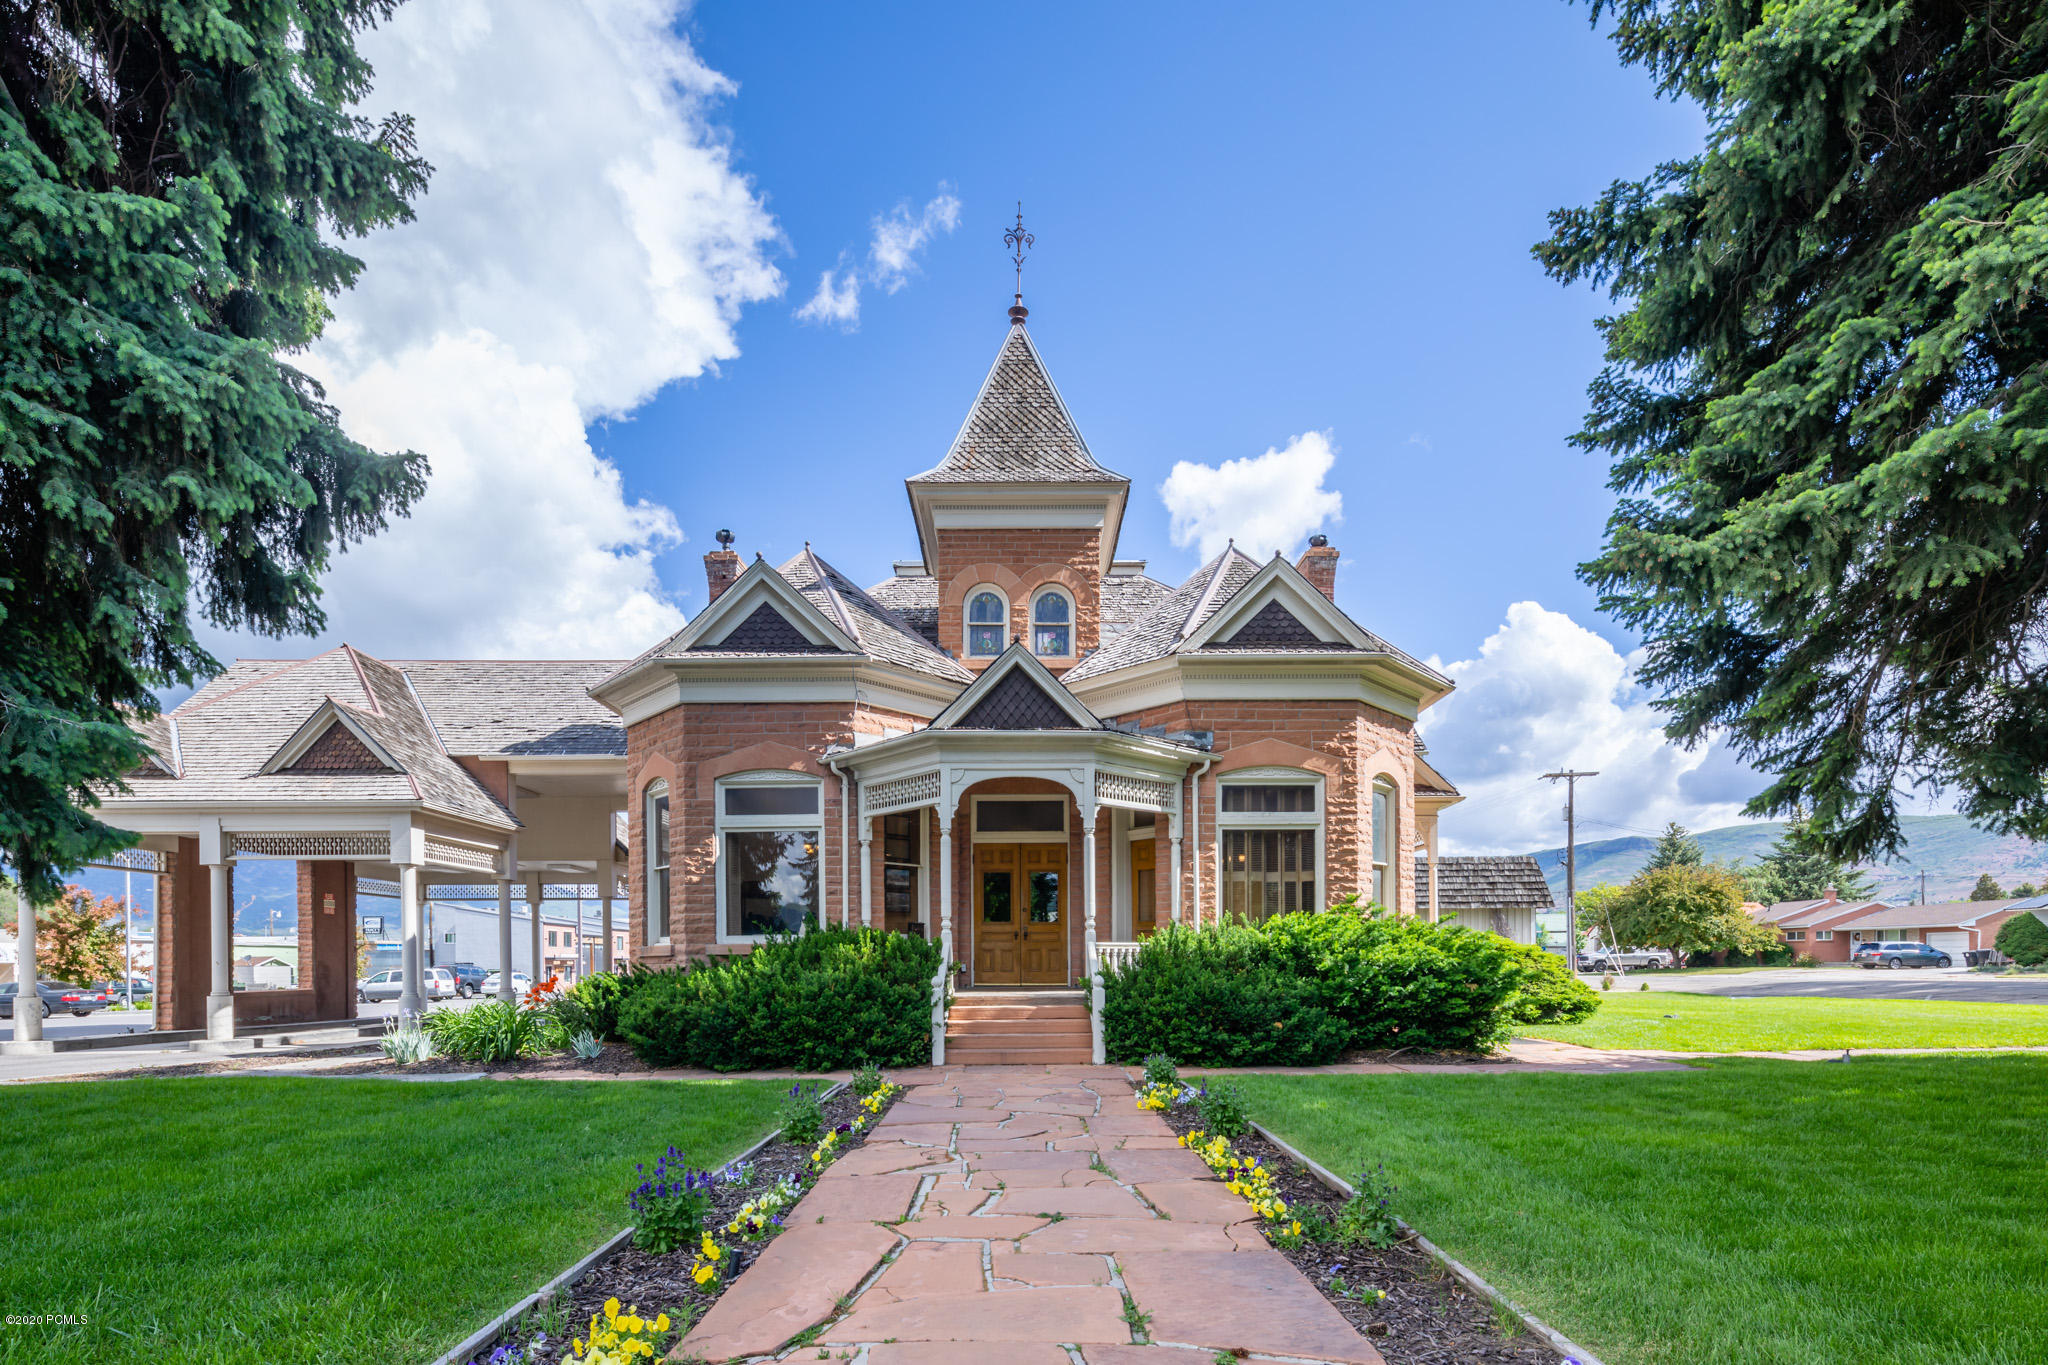 81 Center Street, Heber City, Utah 84032, ,Commercial,For Sale,Center,20190109112430415765000000